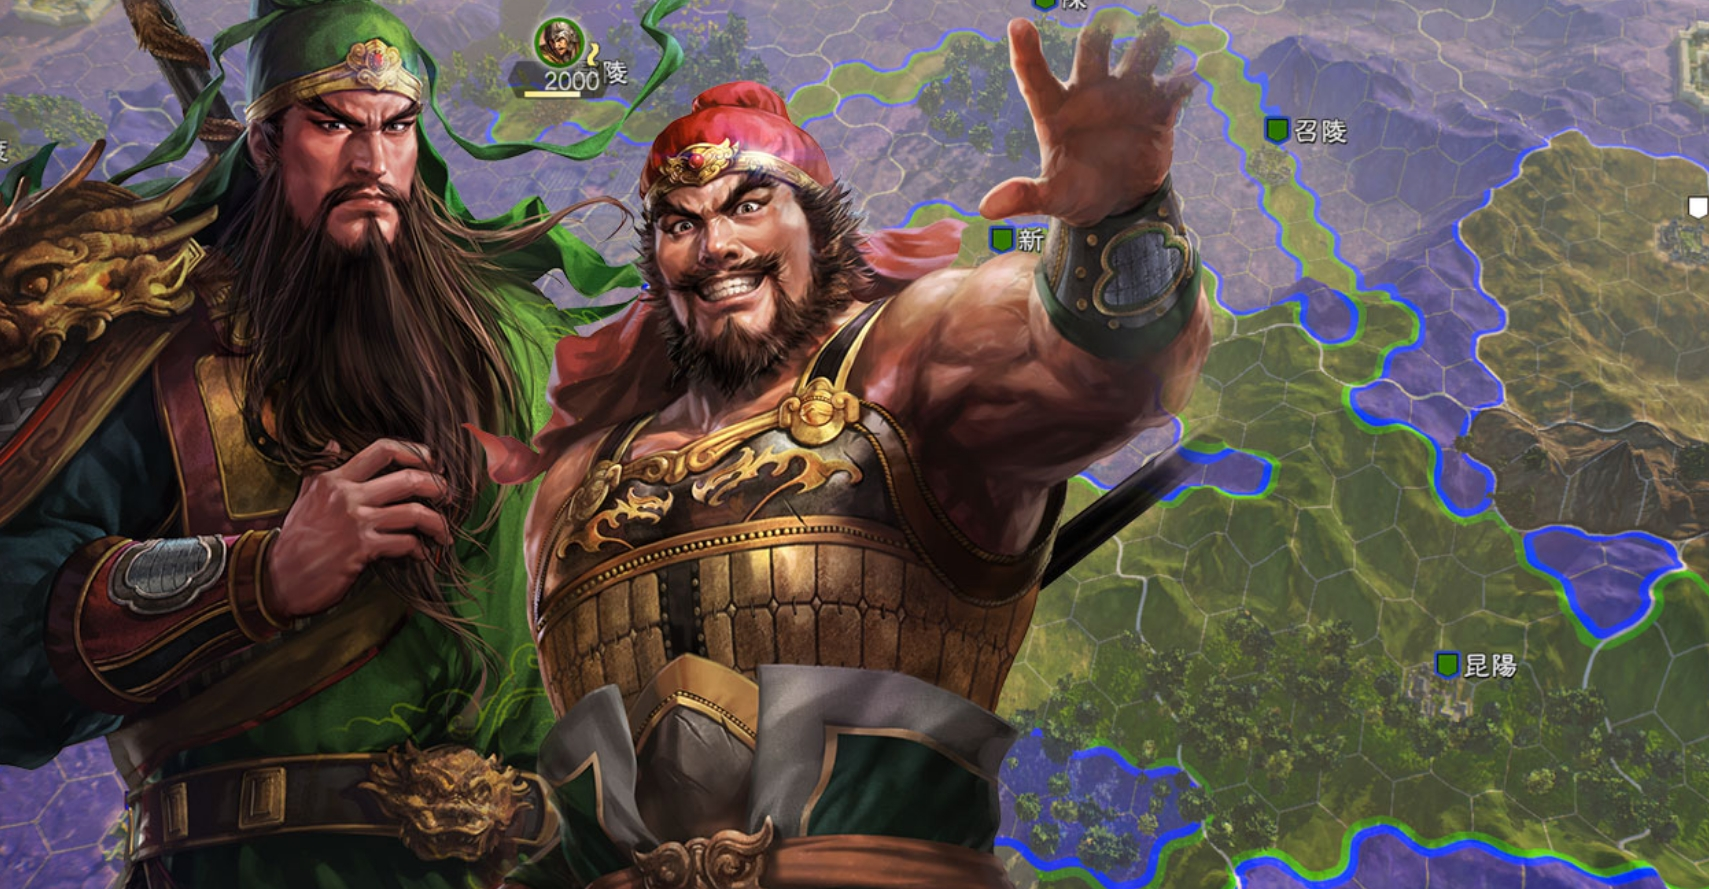 New Romance of the Three Kingdoms XIV Information Regarding Campaign And More